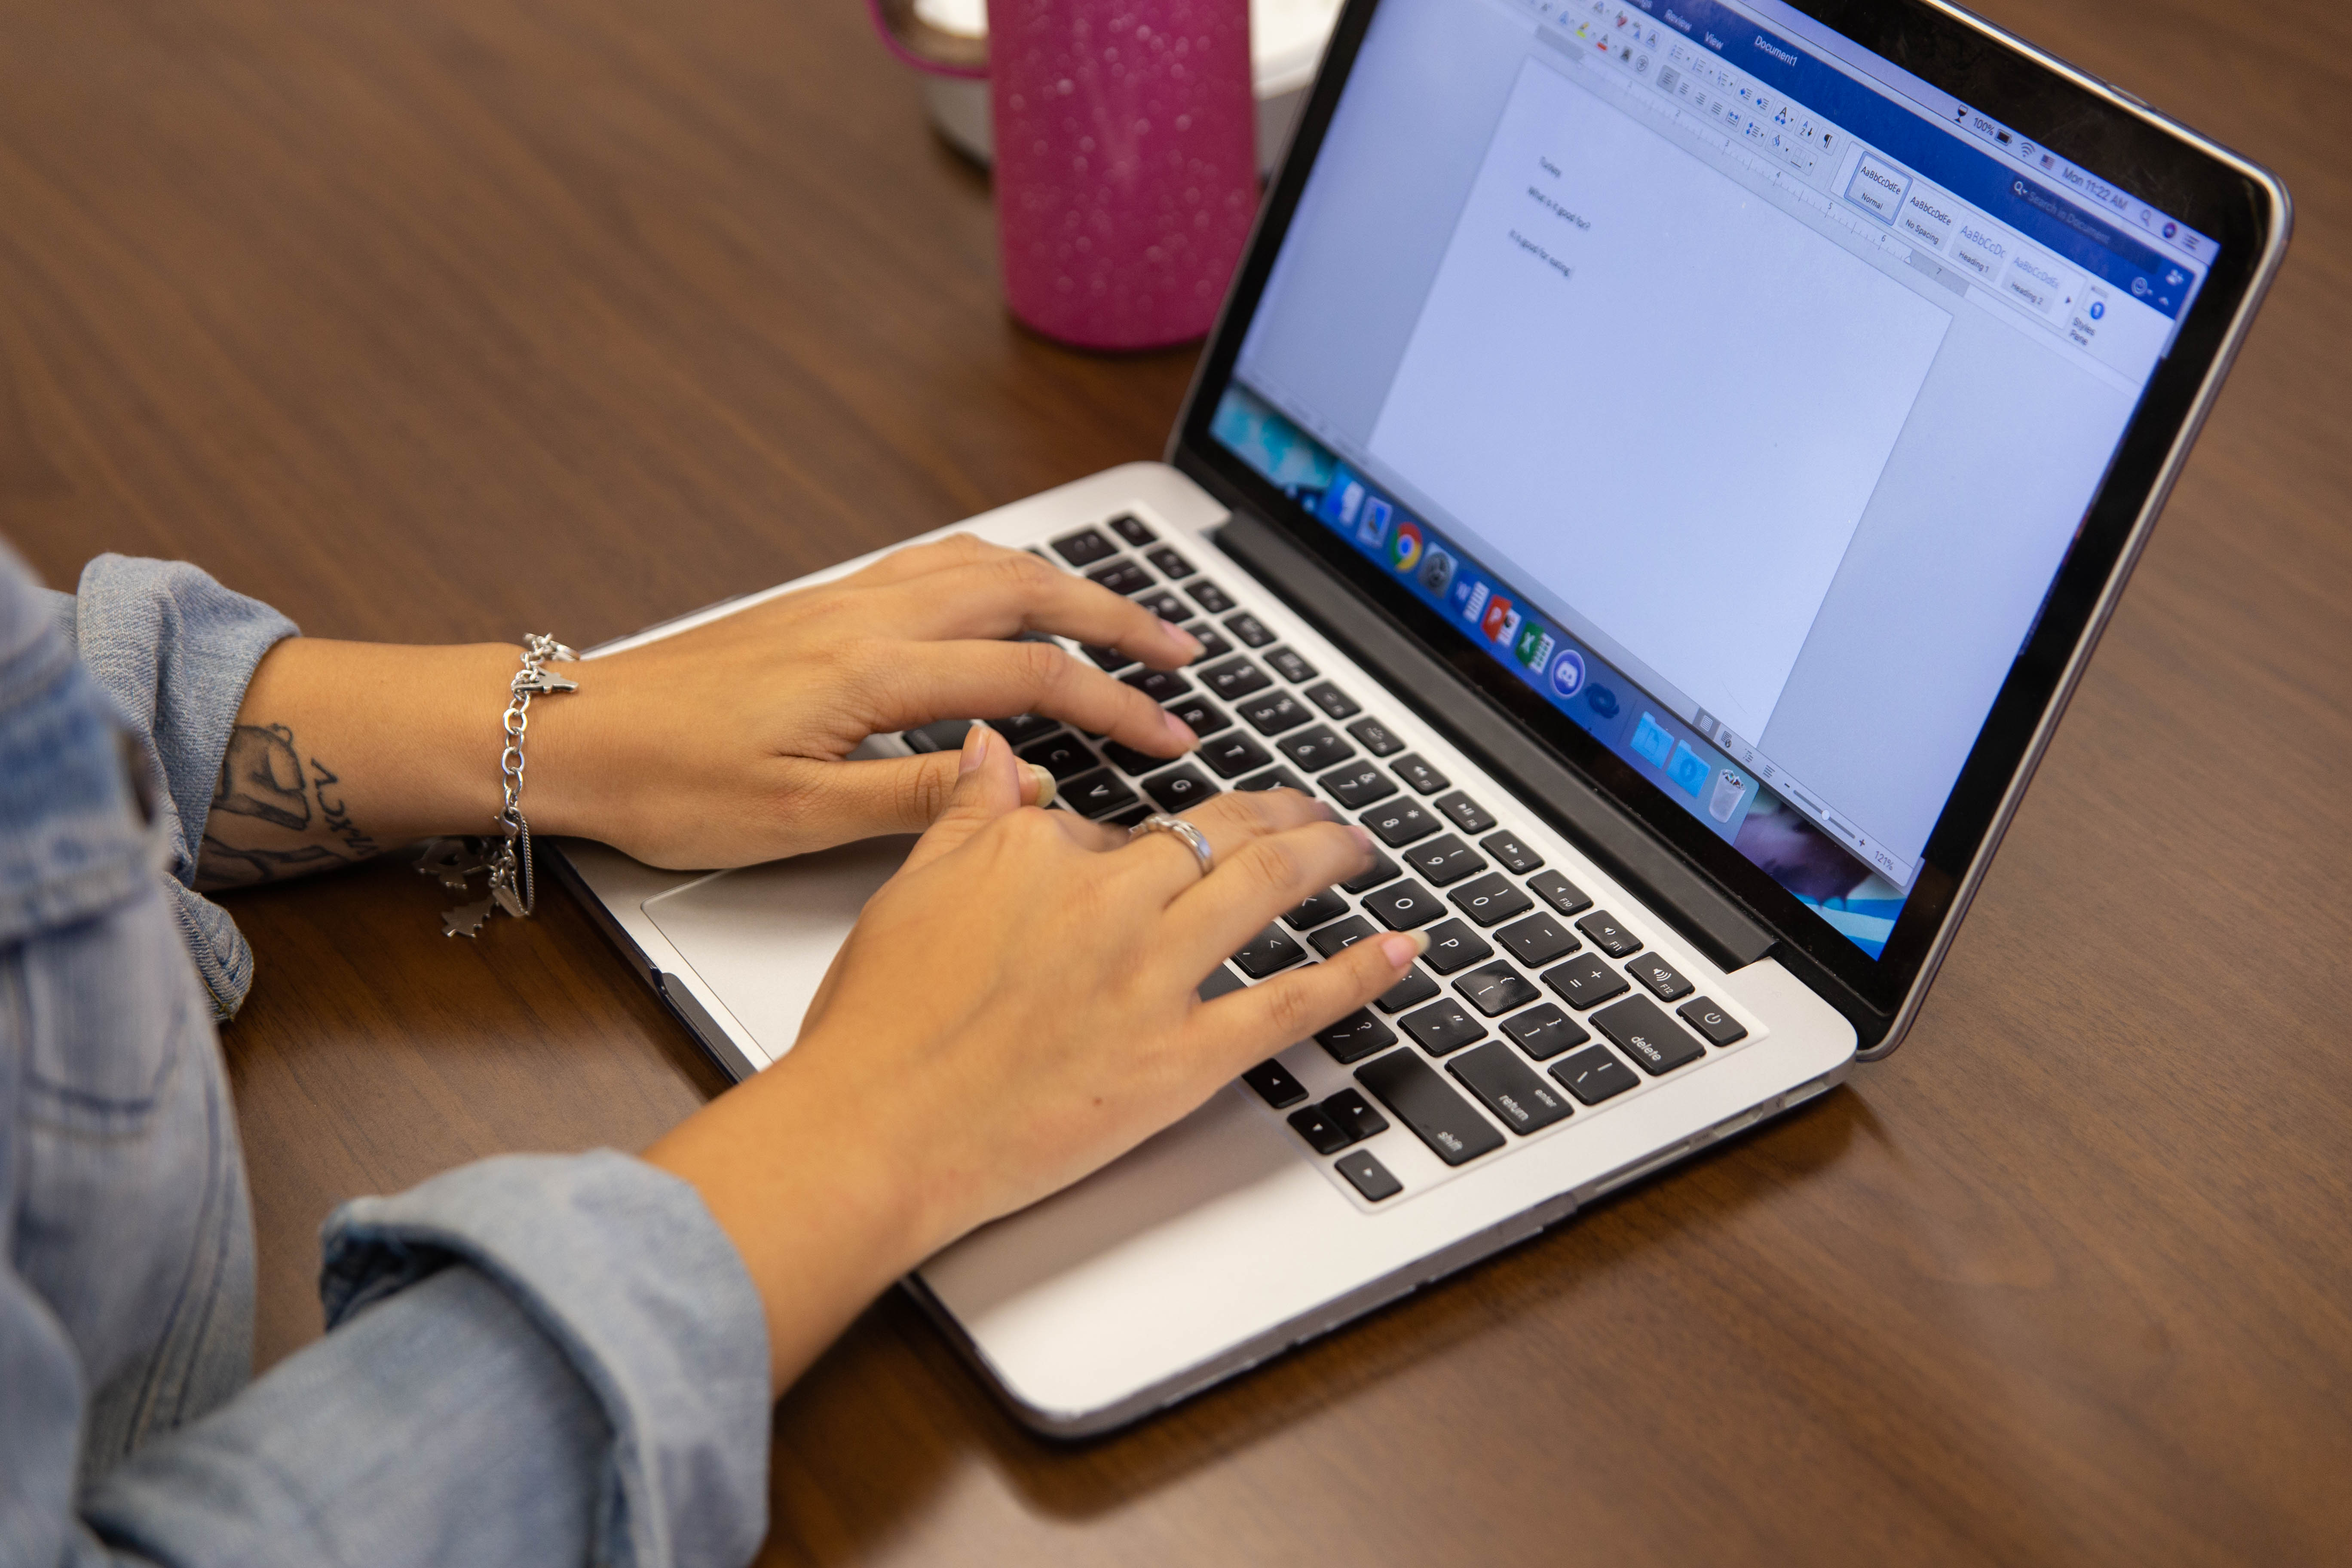 A student types an email on her laptop